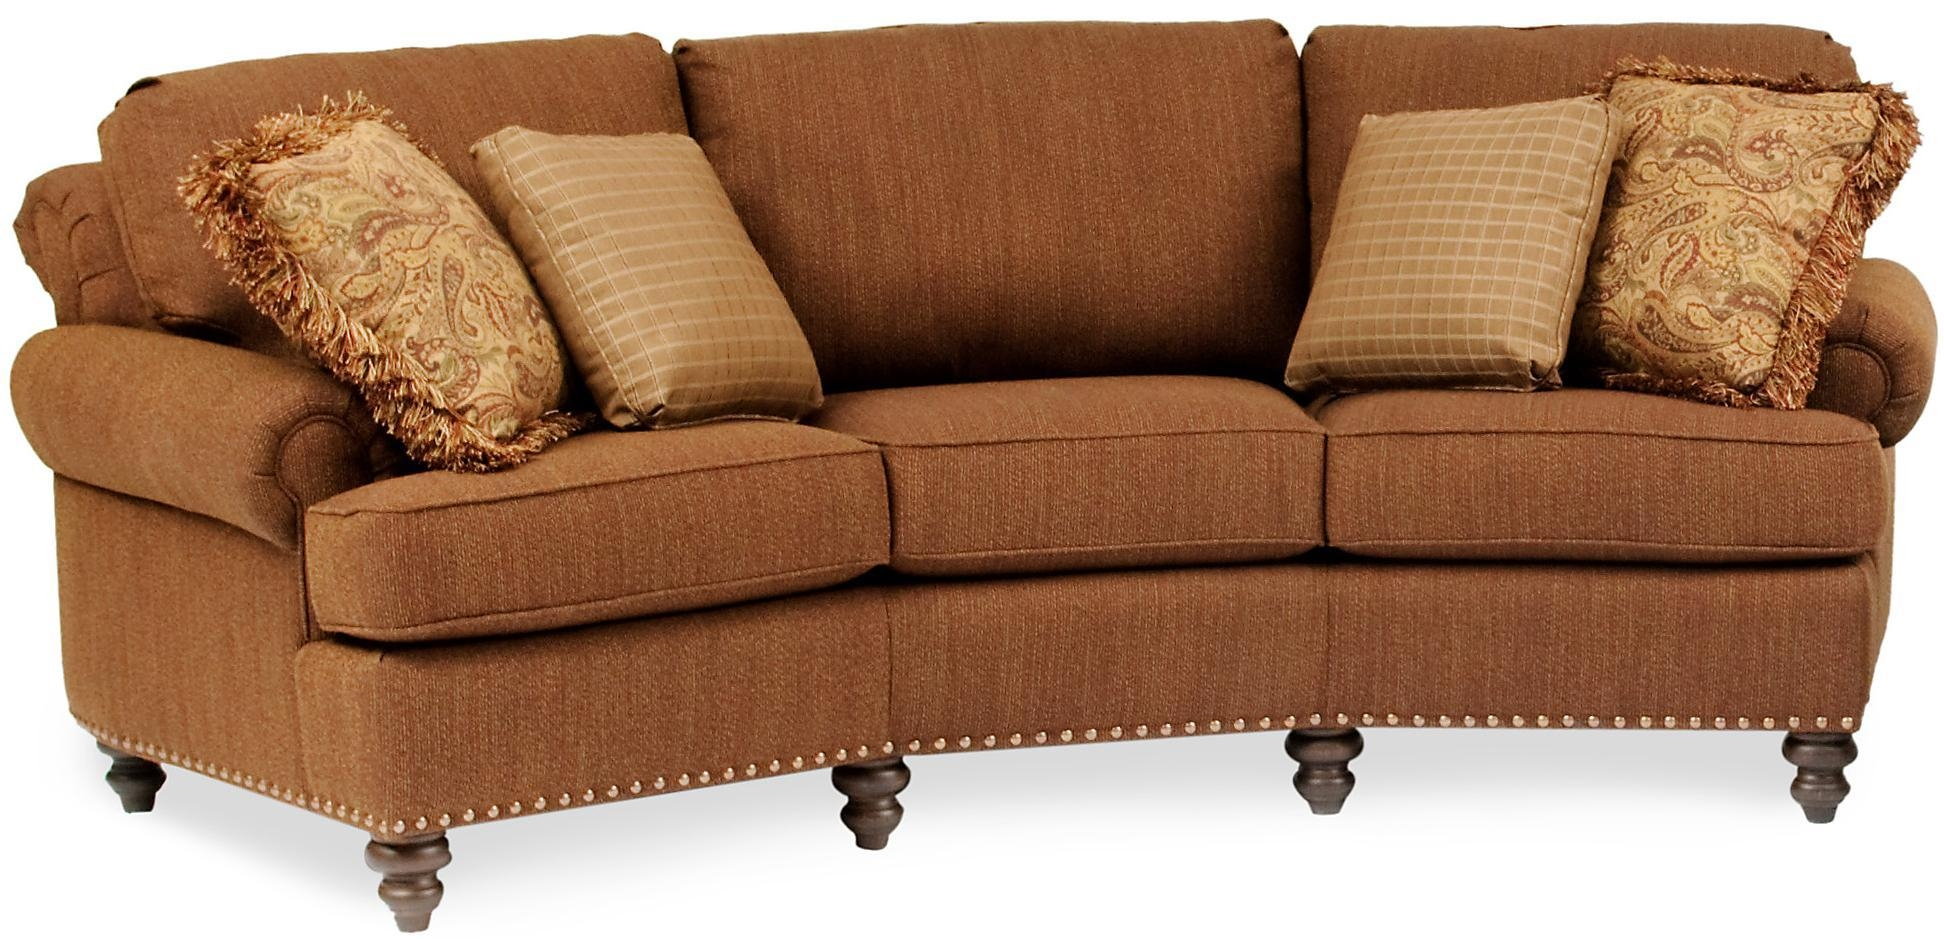 Curved Conversational Sofa With Nailhead Trimsmith Brothers Inside Smith Brothers Sofas (Image 2 of 20)